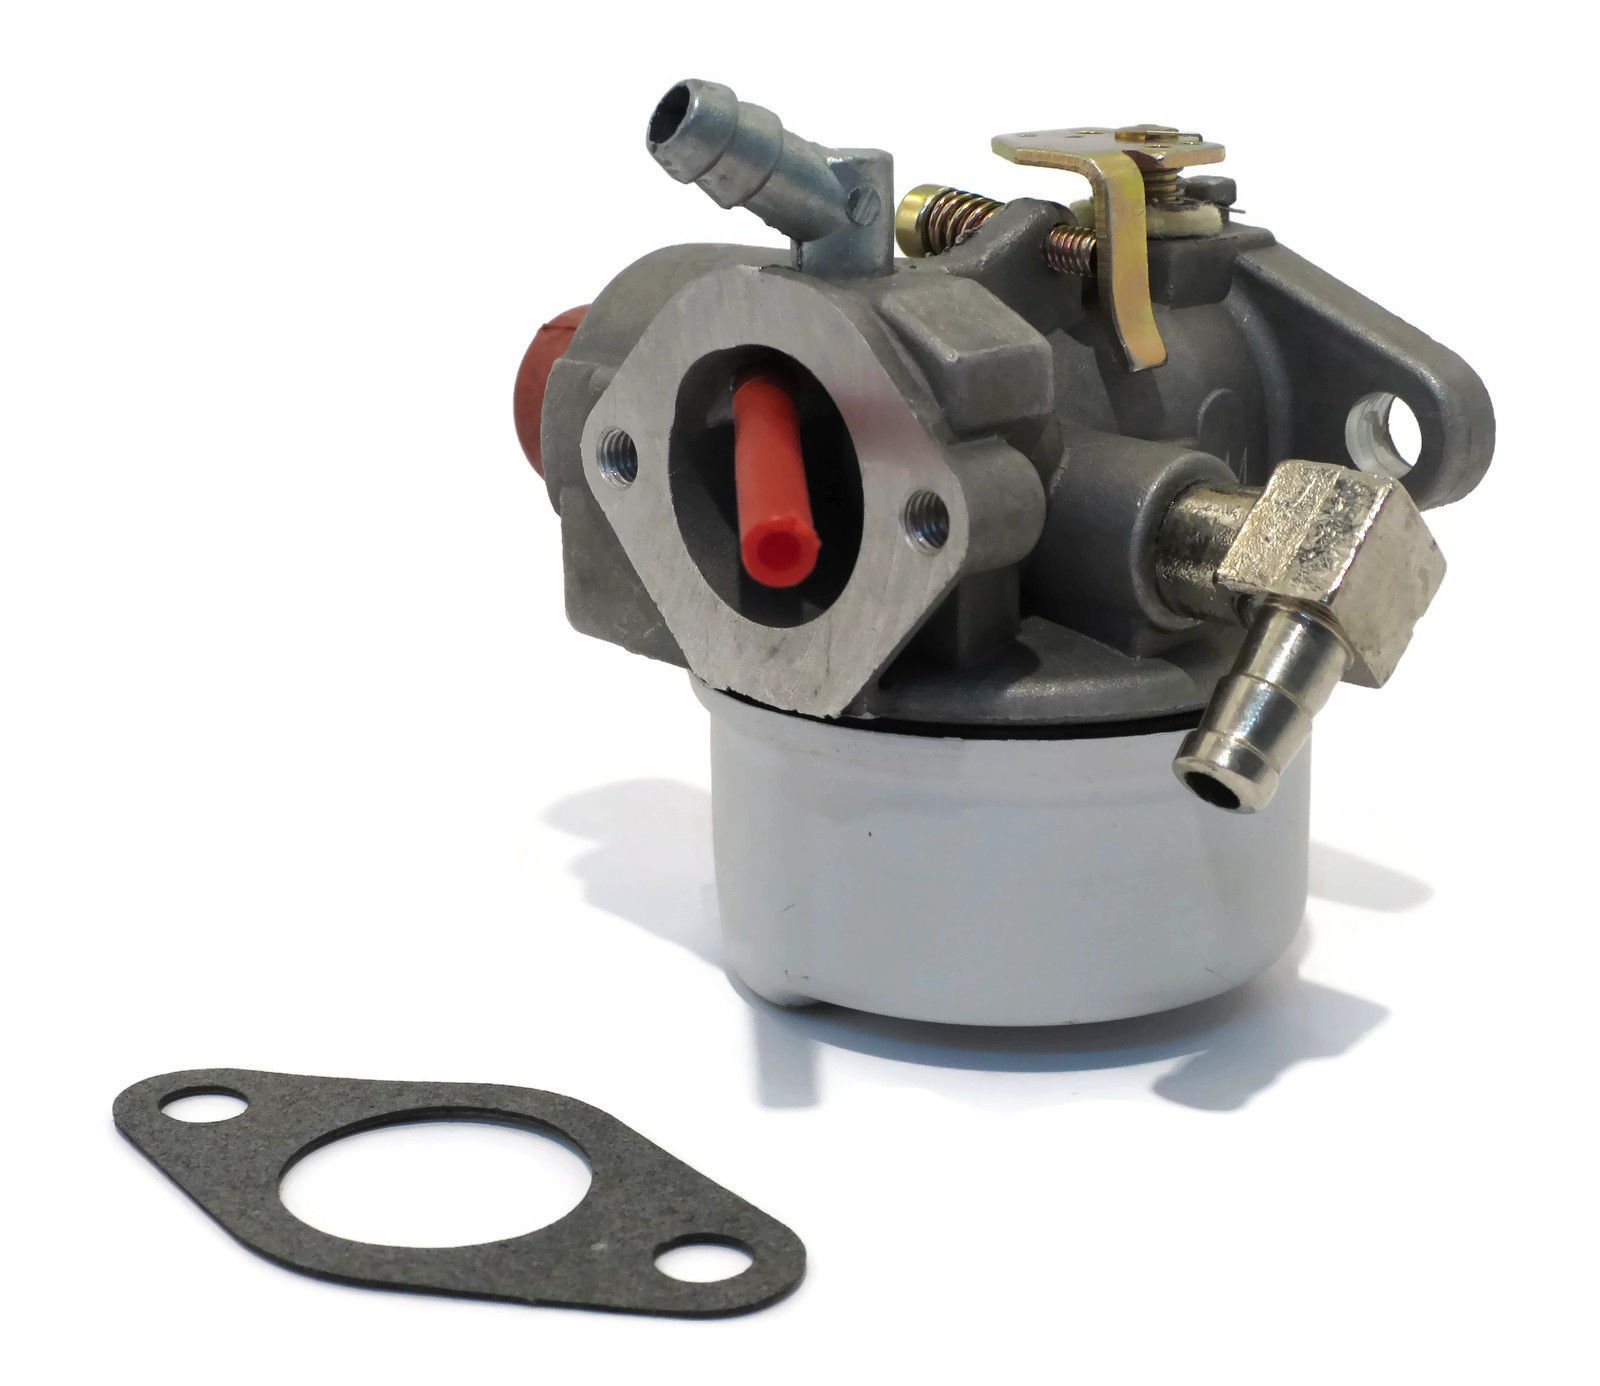 The ROP Shop Tecumseh Carburetor Carb 640124 640156 640168 640173 640174 640262 Lawn Mower by The ROP Shop